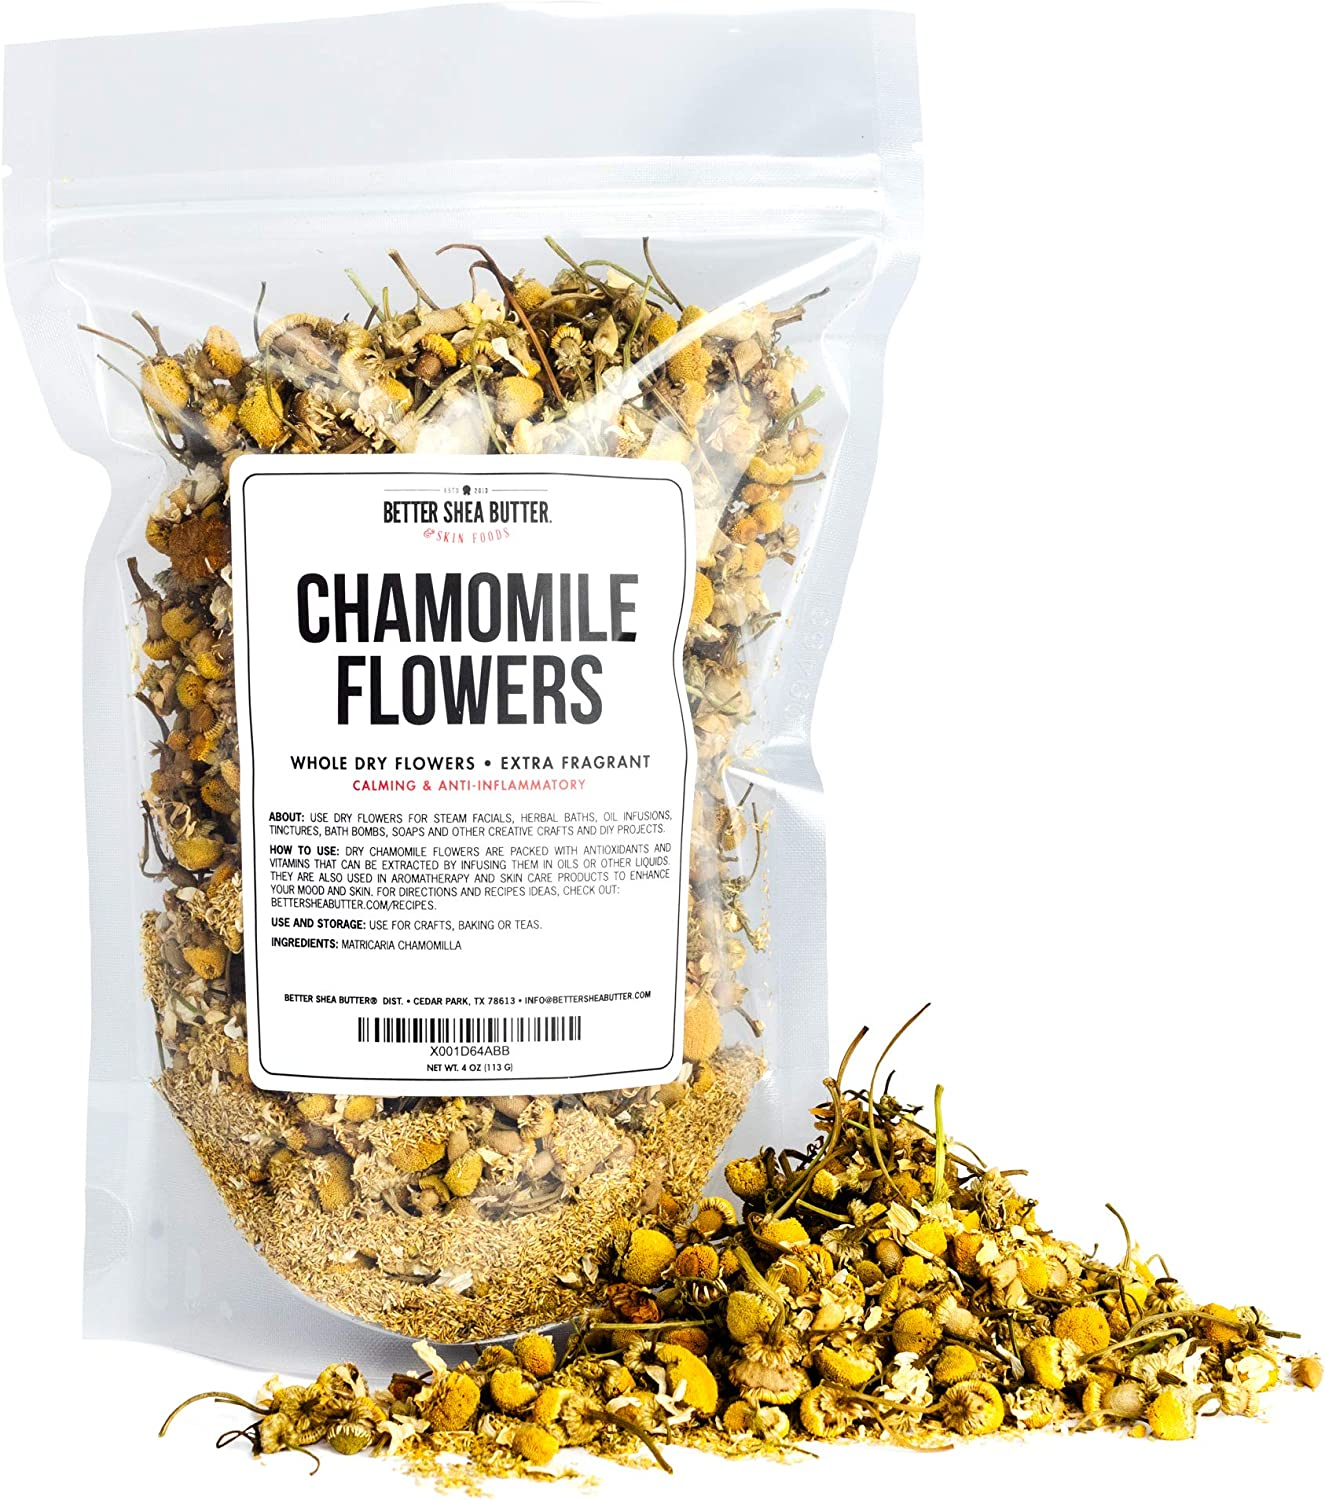 Chamomile Whole Flowers for Tea, Baking, Crafts, Sachets, Baths, Oil Infusions - 4oz in Resealable, Recyclable Pouch - by Better Shea Butter